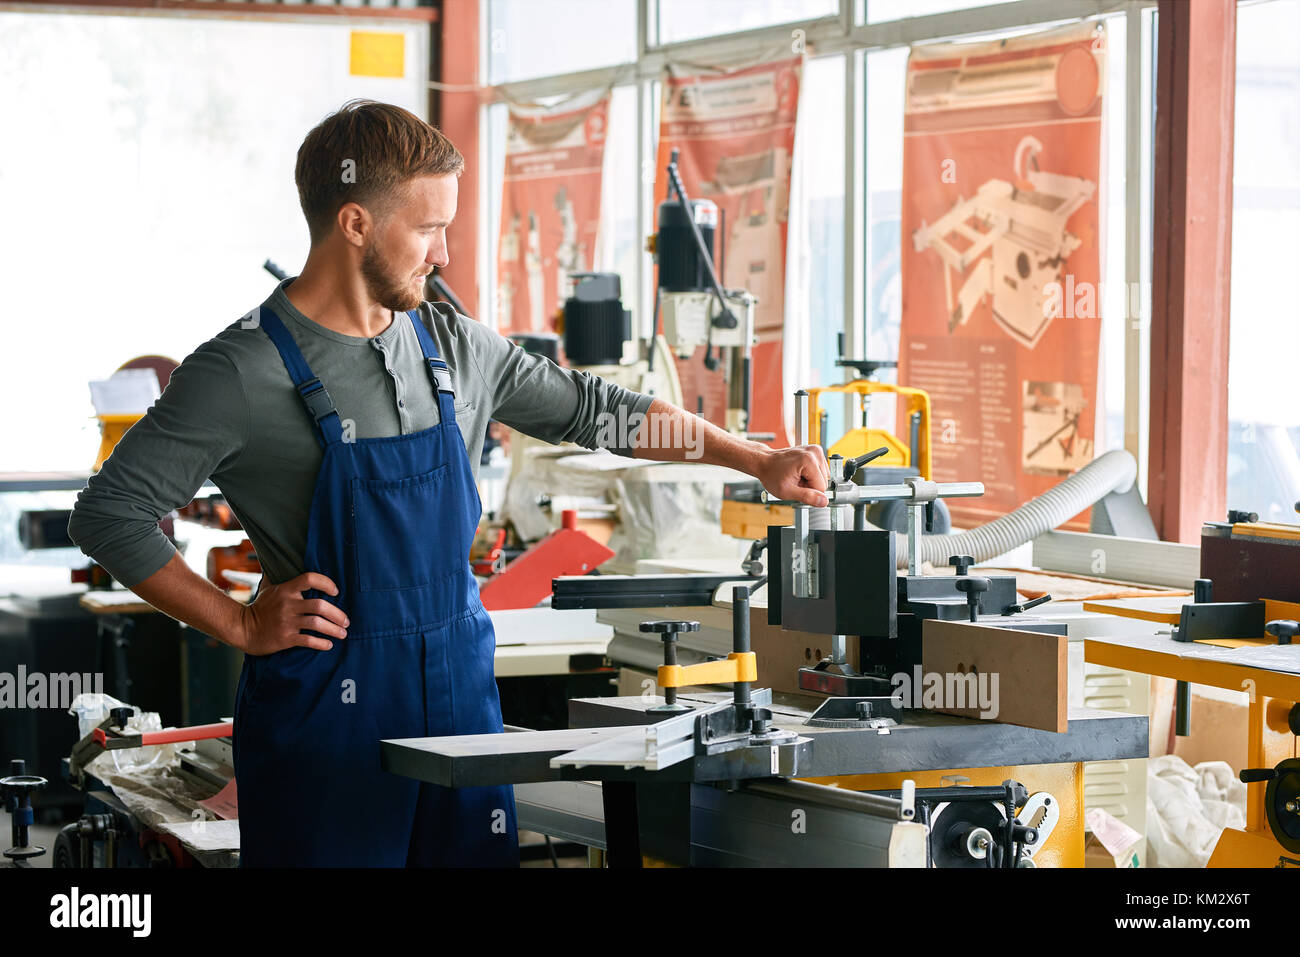 Young Workman Inspecting Machines in Shop - Stock Image